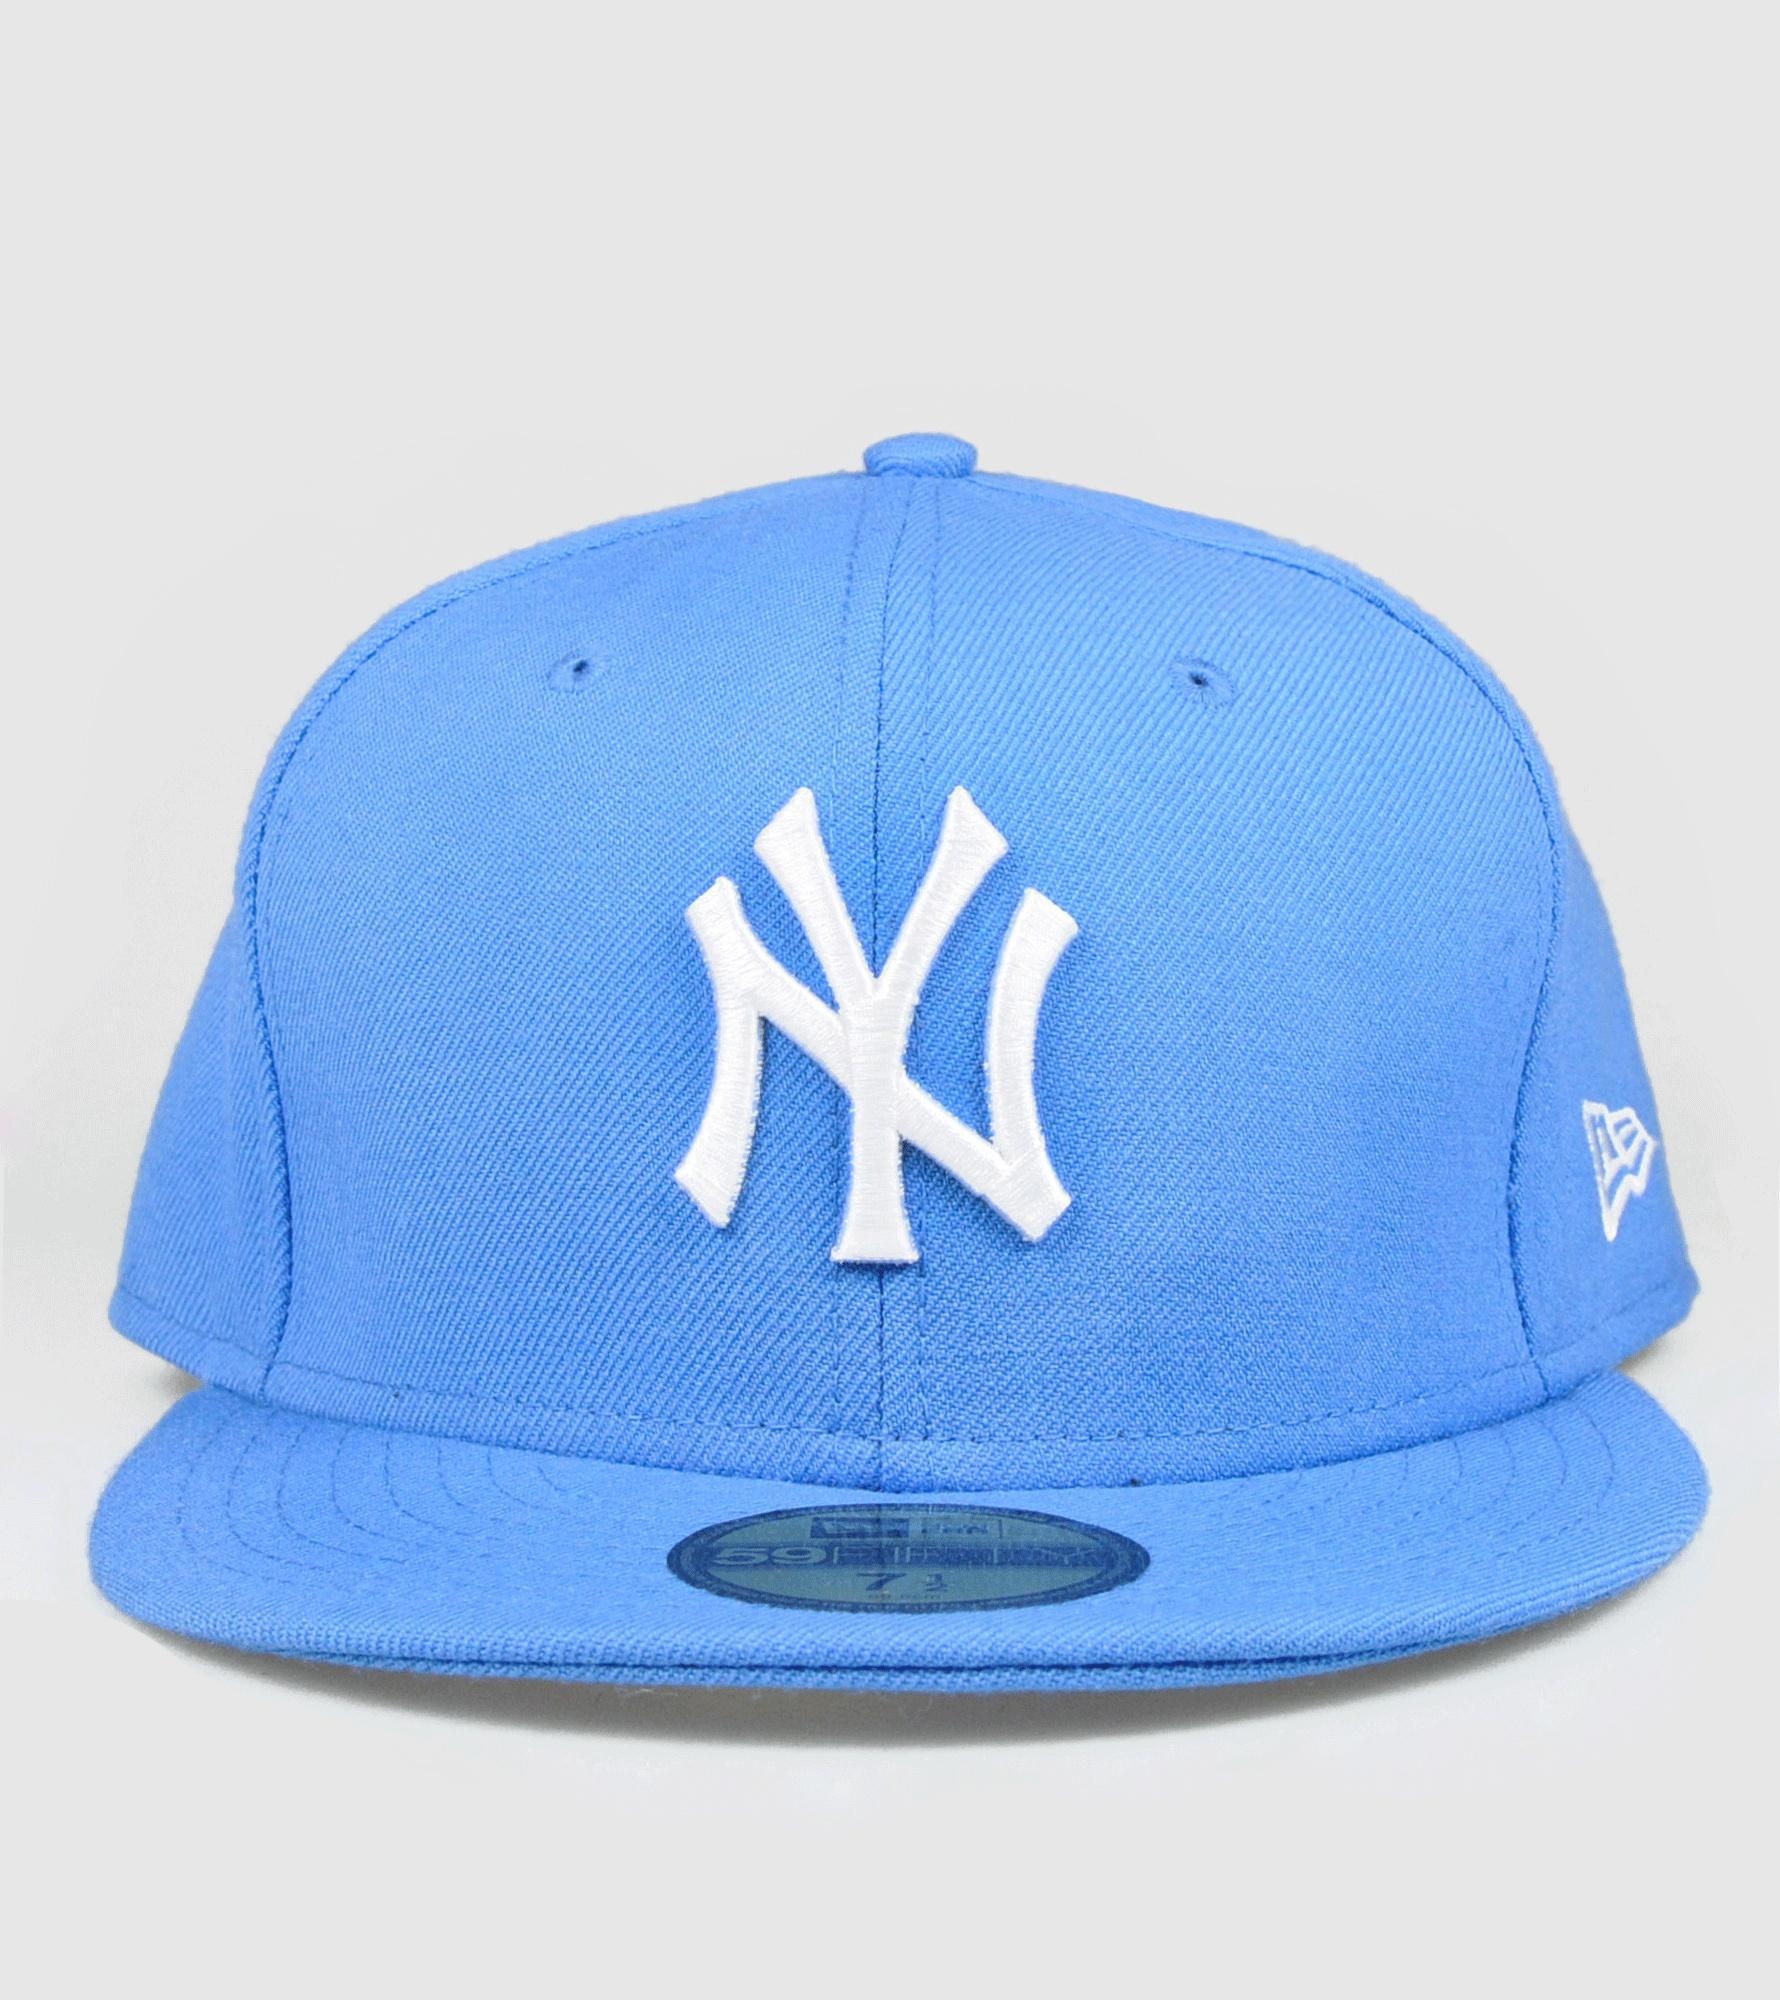 2a78c3406a1 Lyst - Ktz Mlb New York Yankees 59fifty Fitted Cap in Blue for Men